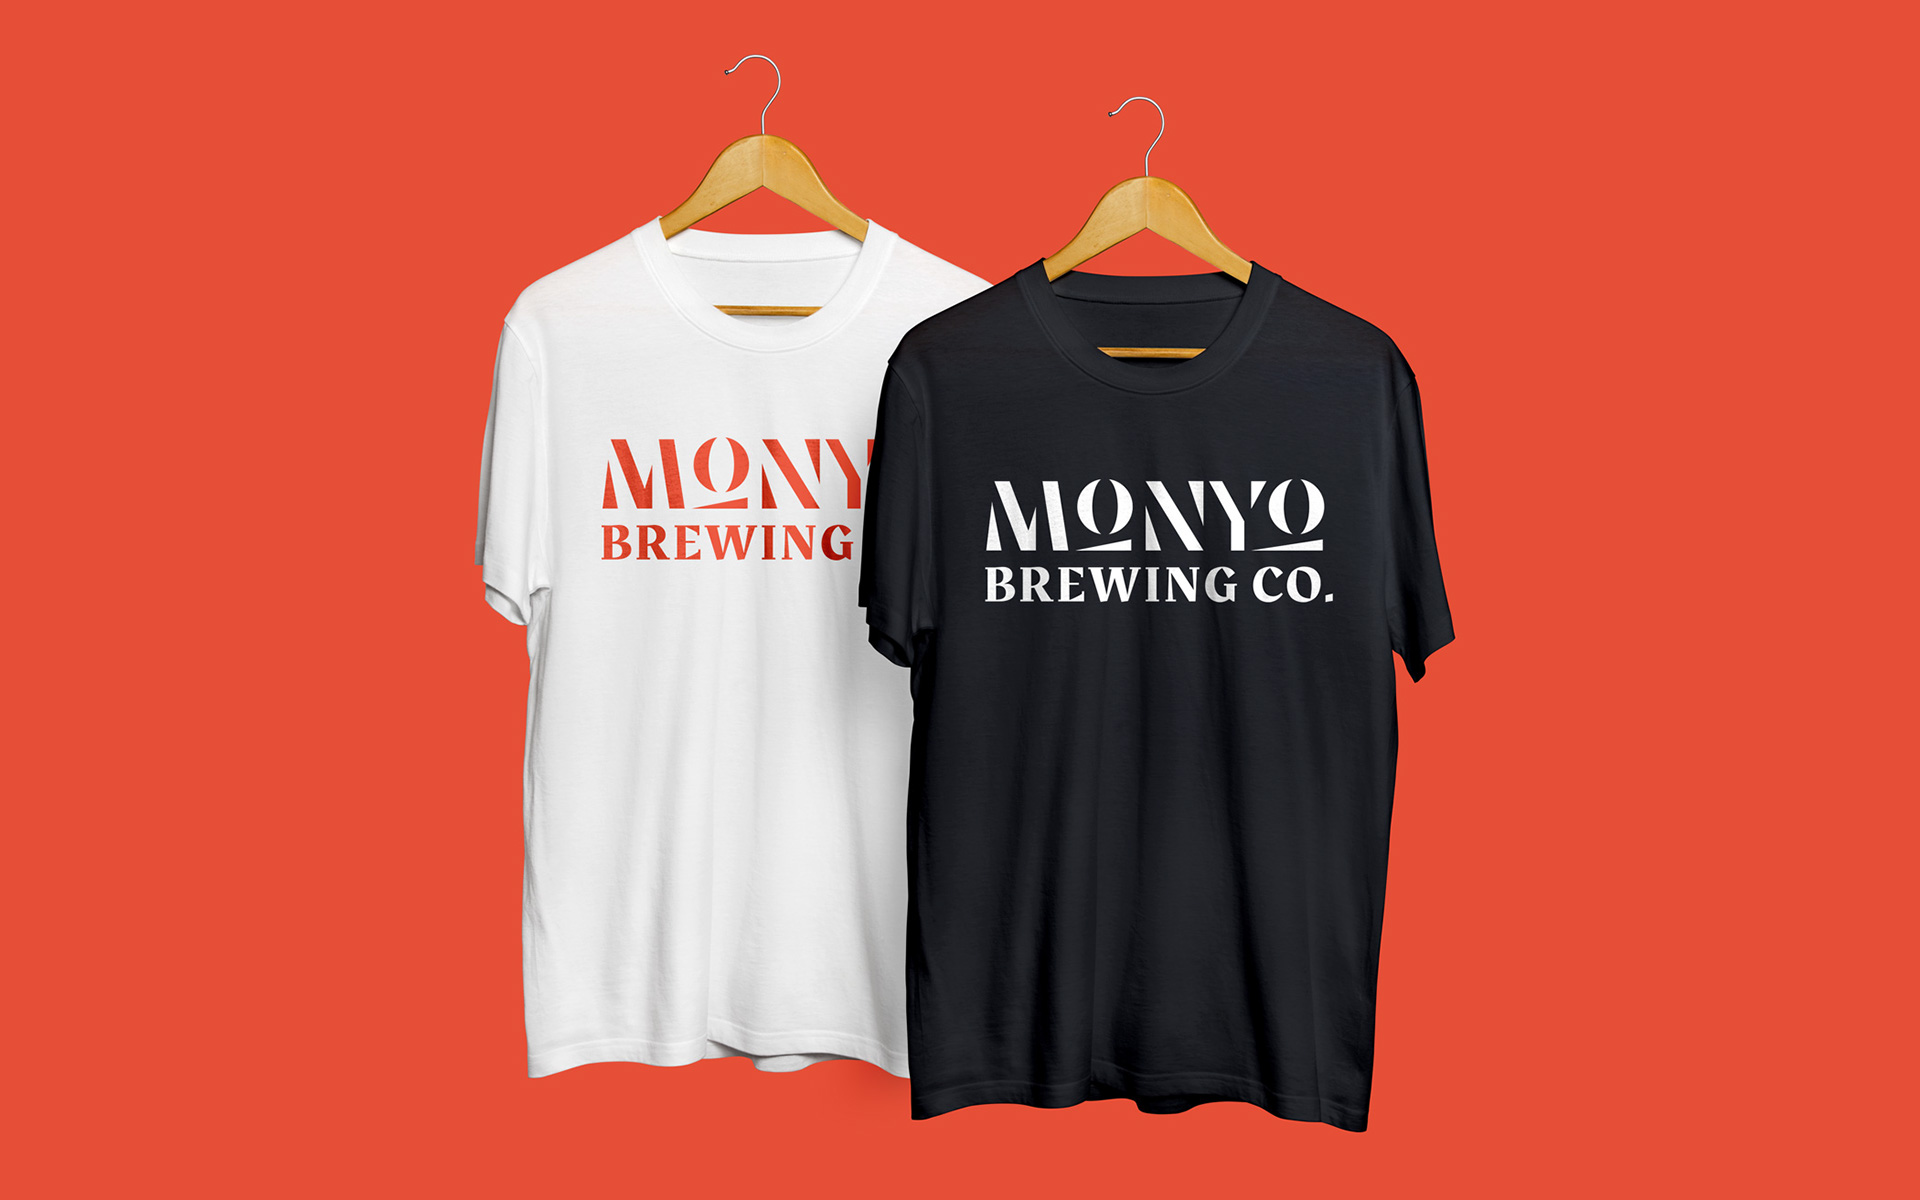 MONYO craft beer packaging \ T-shirt design